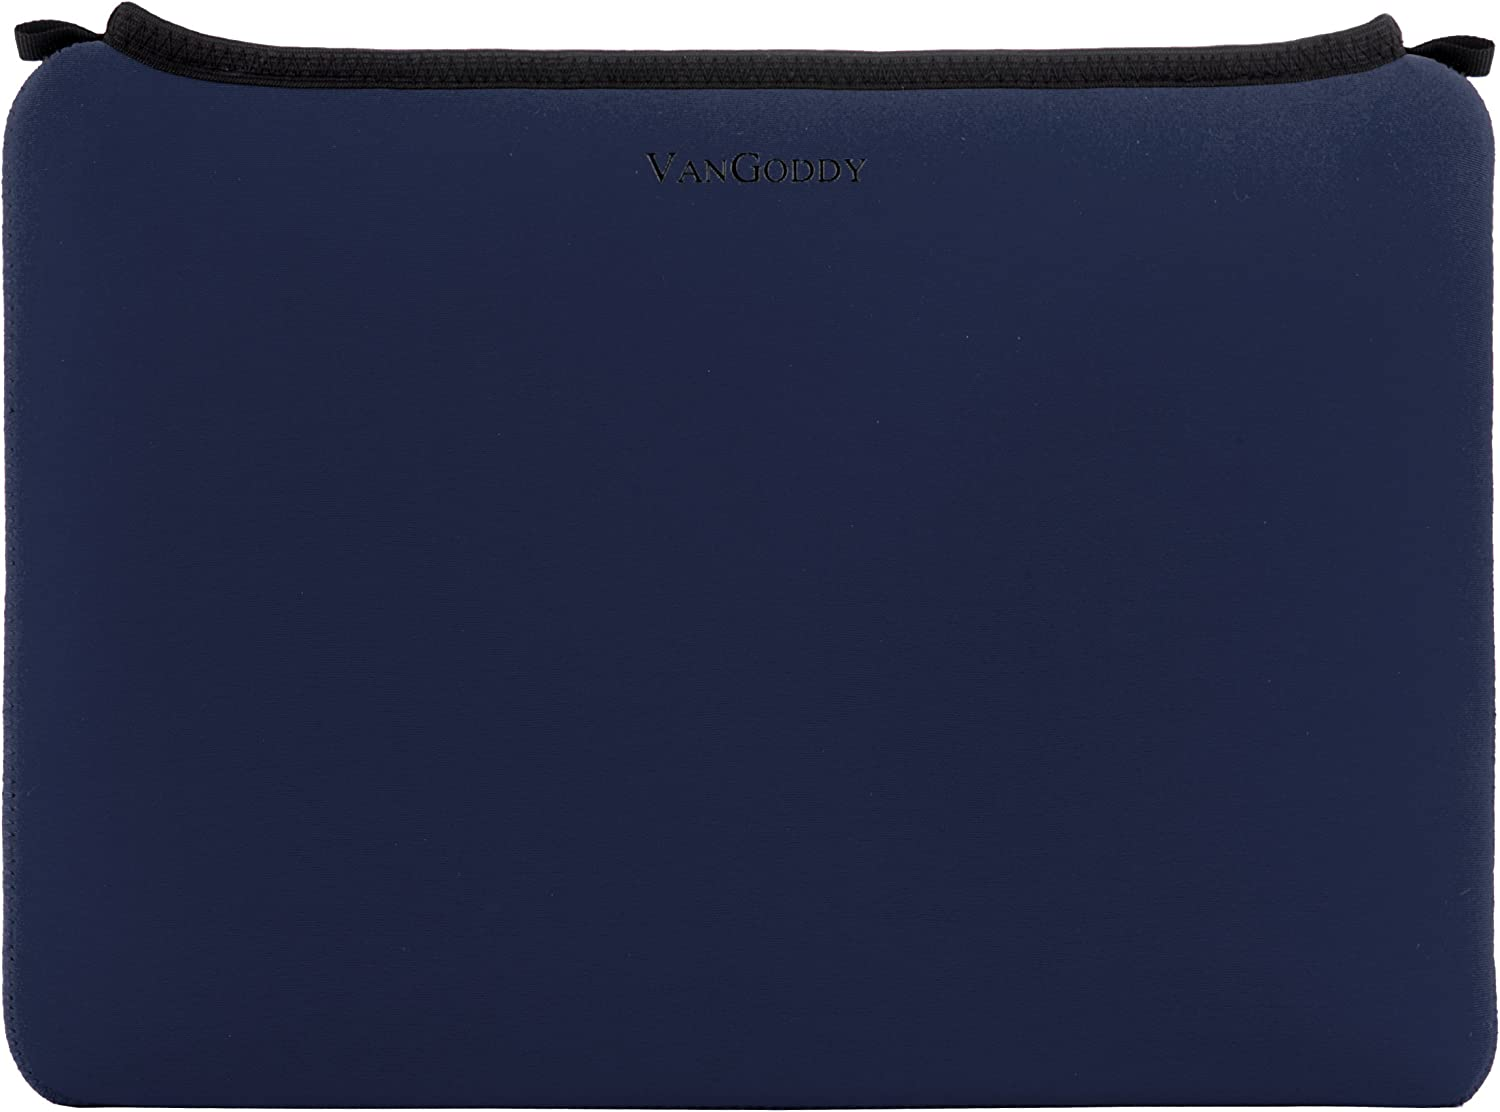 Vangoddy Portable Ultra Slim Navy Blue Smart Compact Sleeve for Dell Inspiron Latitude 15 inch Series Laptop